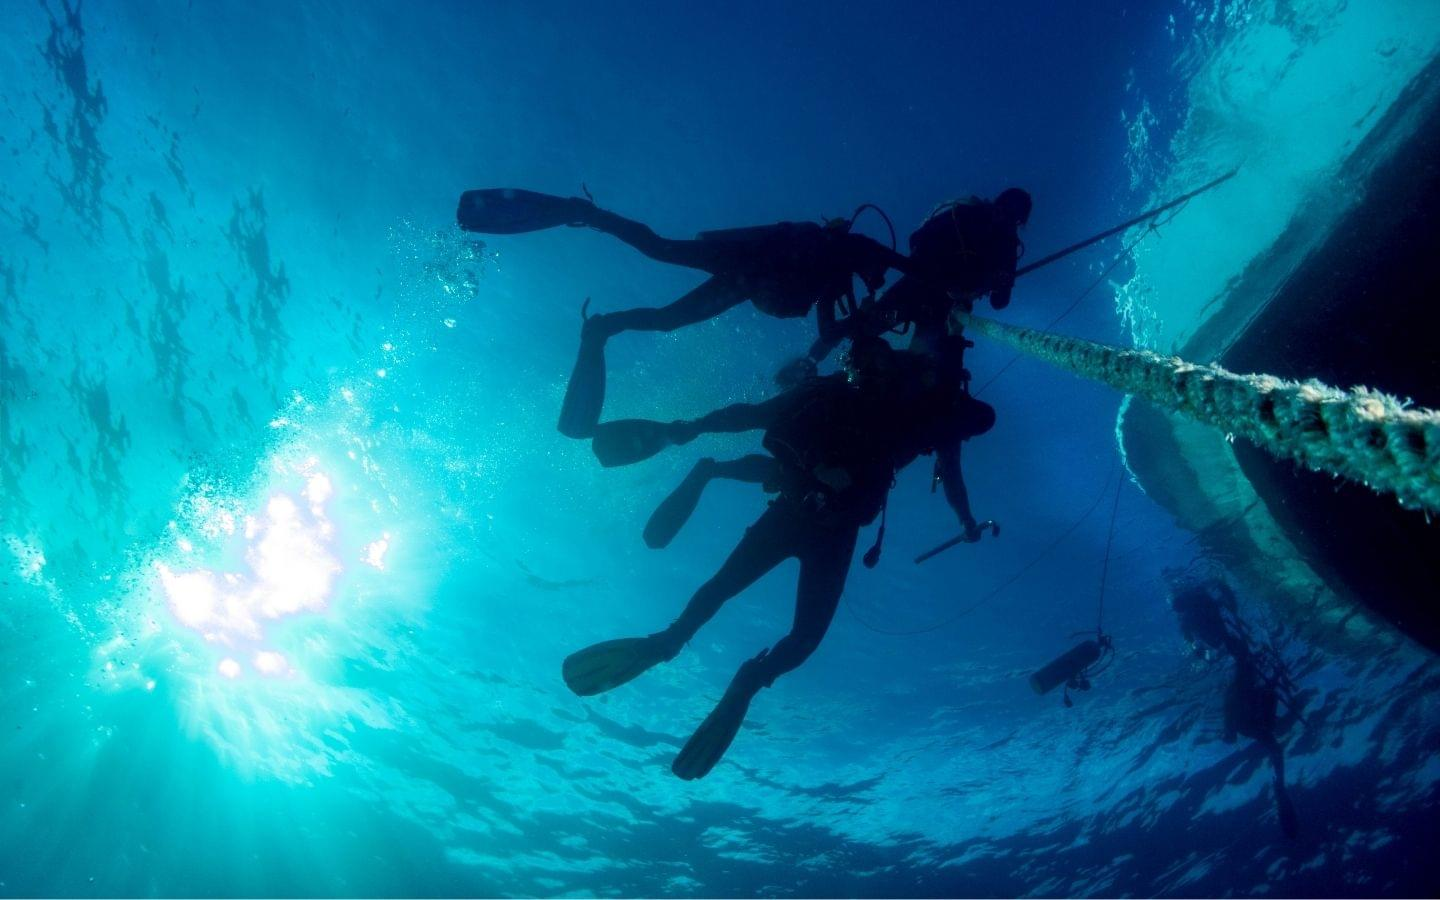 diving underwater on anchor line off boat